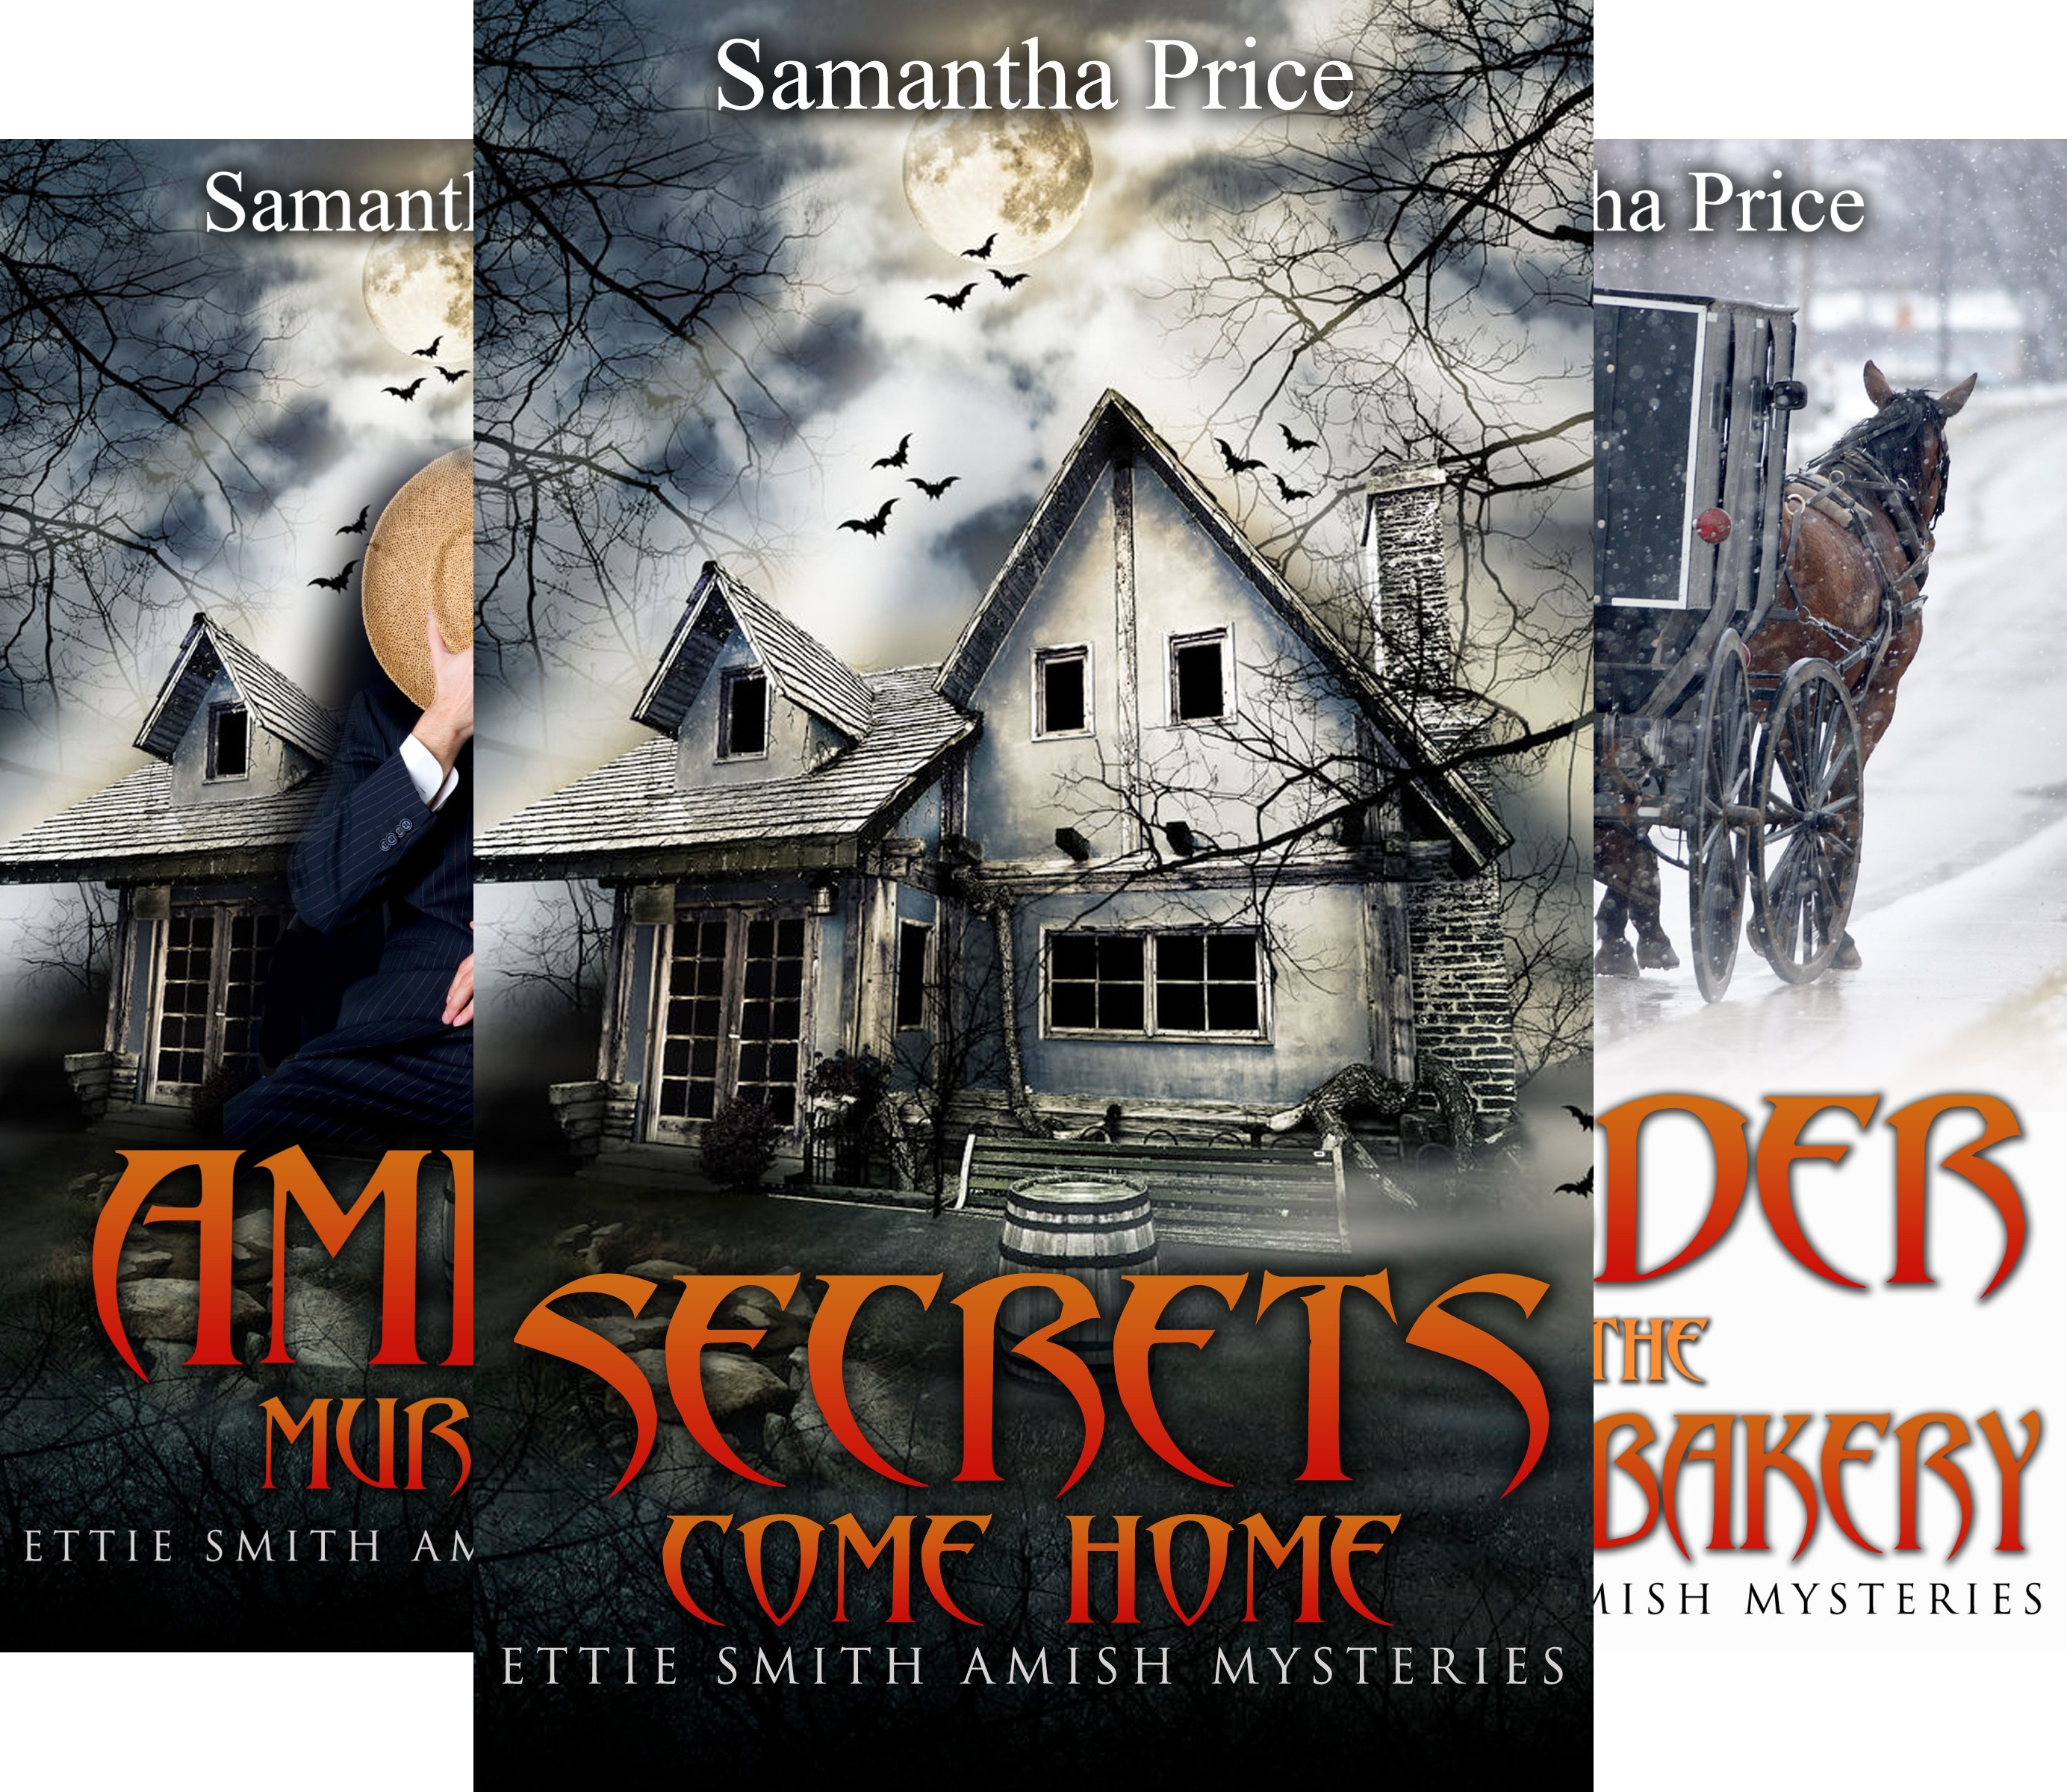 Ettie Smith Amish Mysteries (12 Book Series)